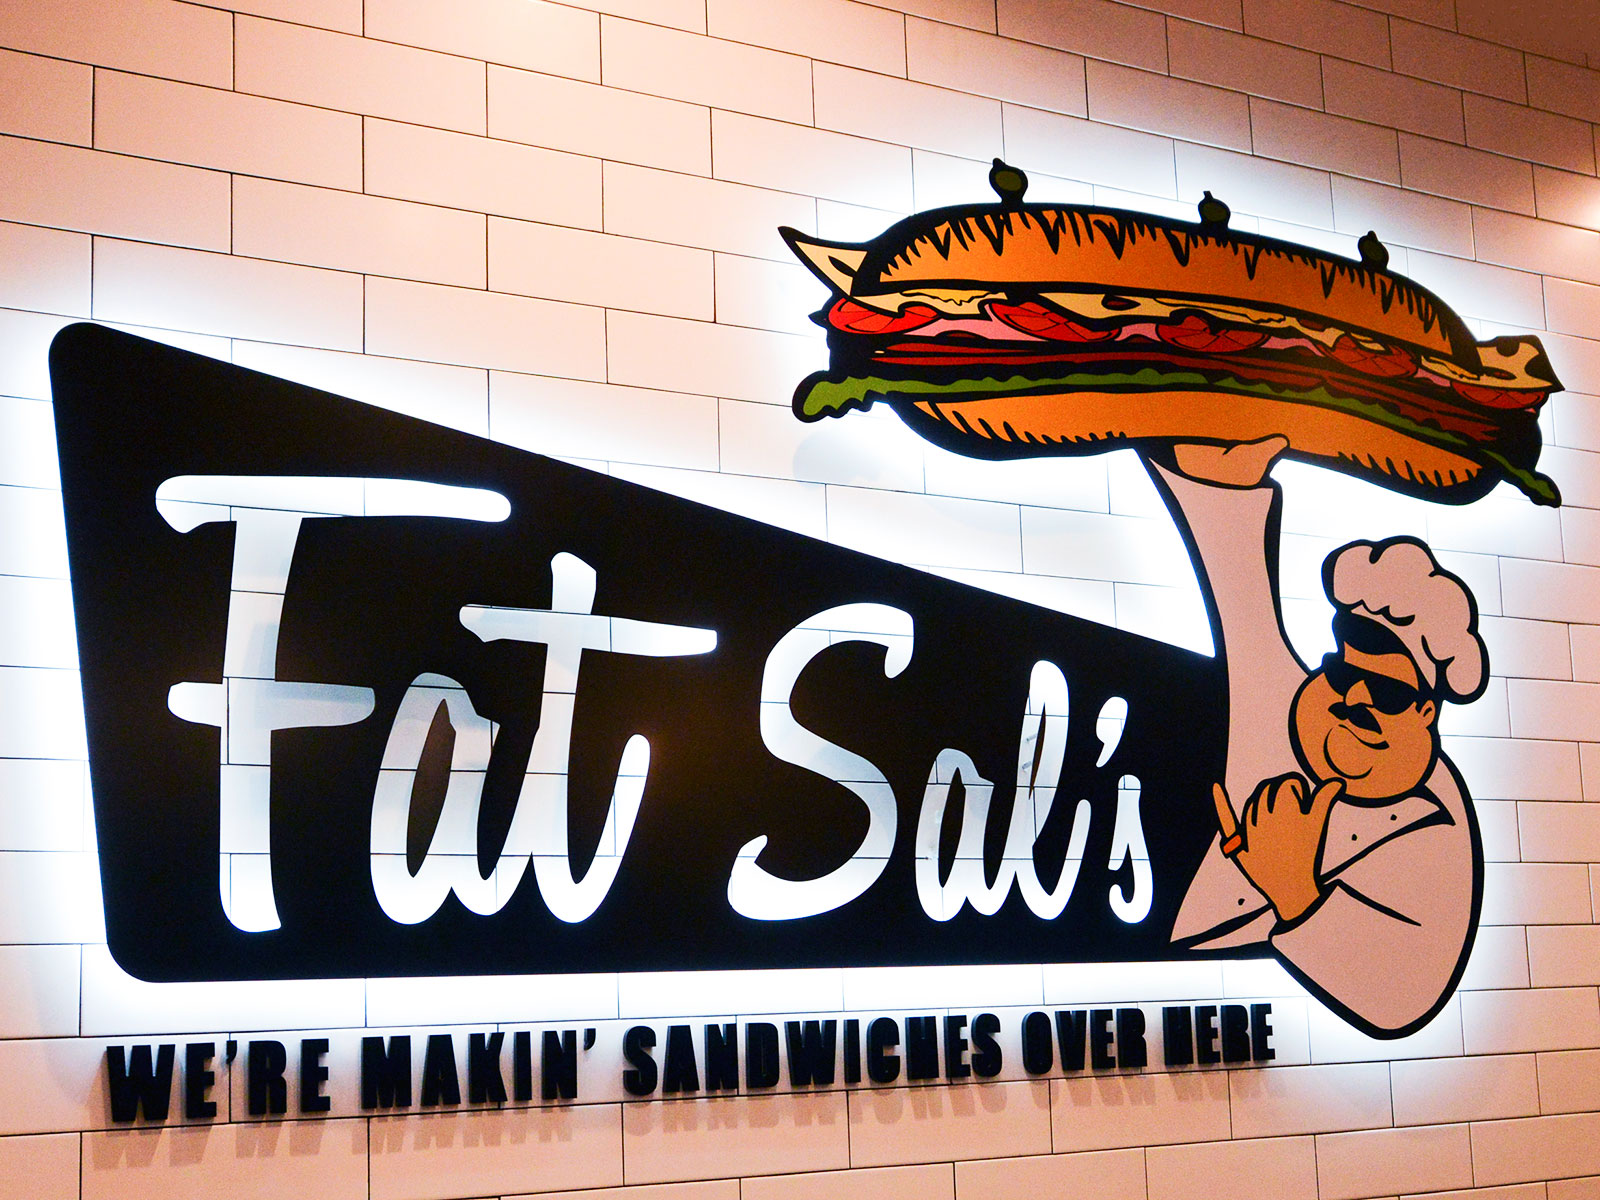 fat sal's interior sign light up